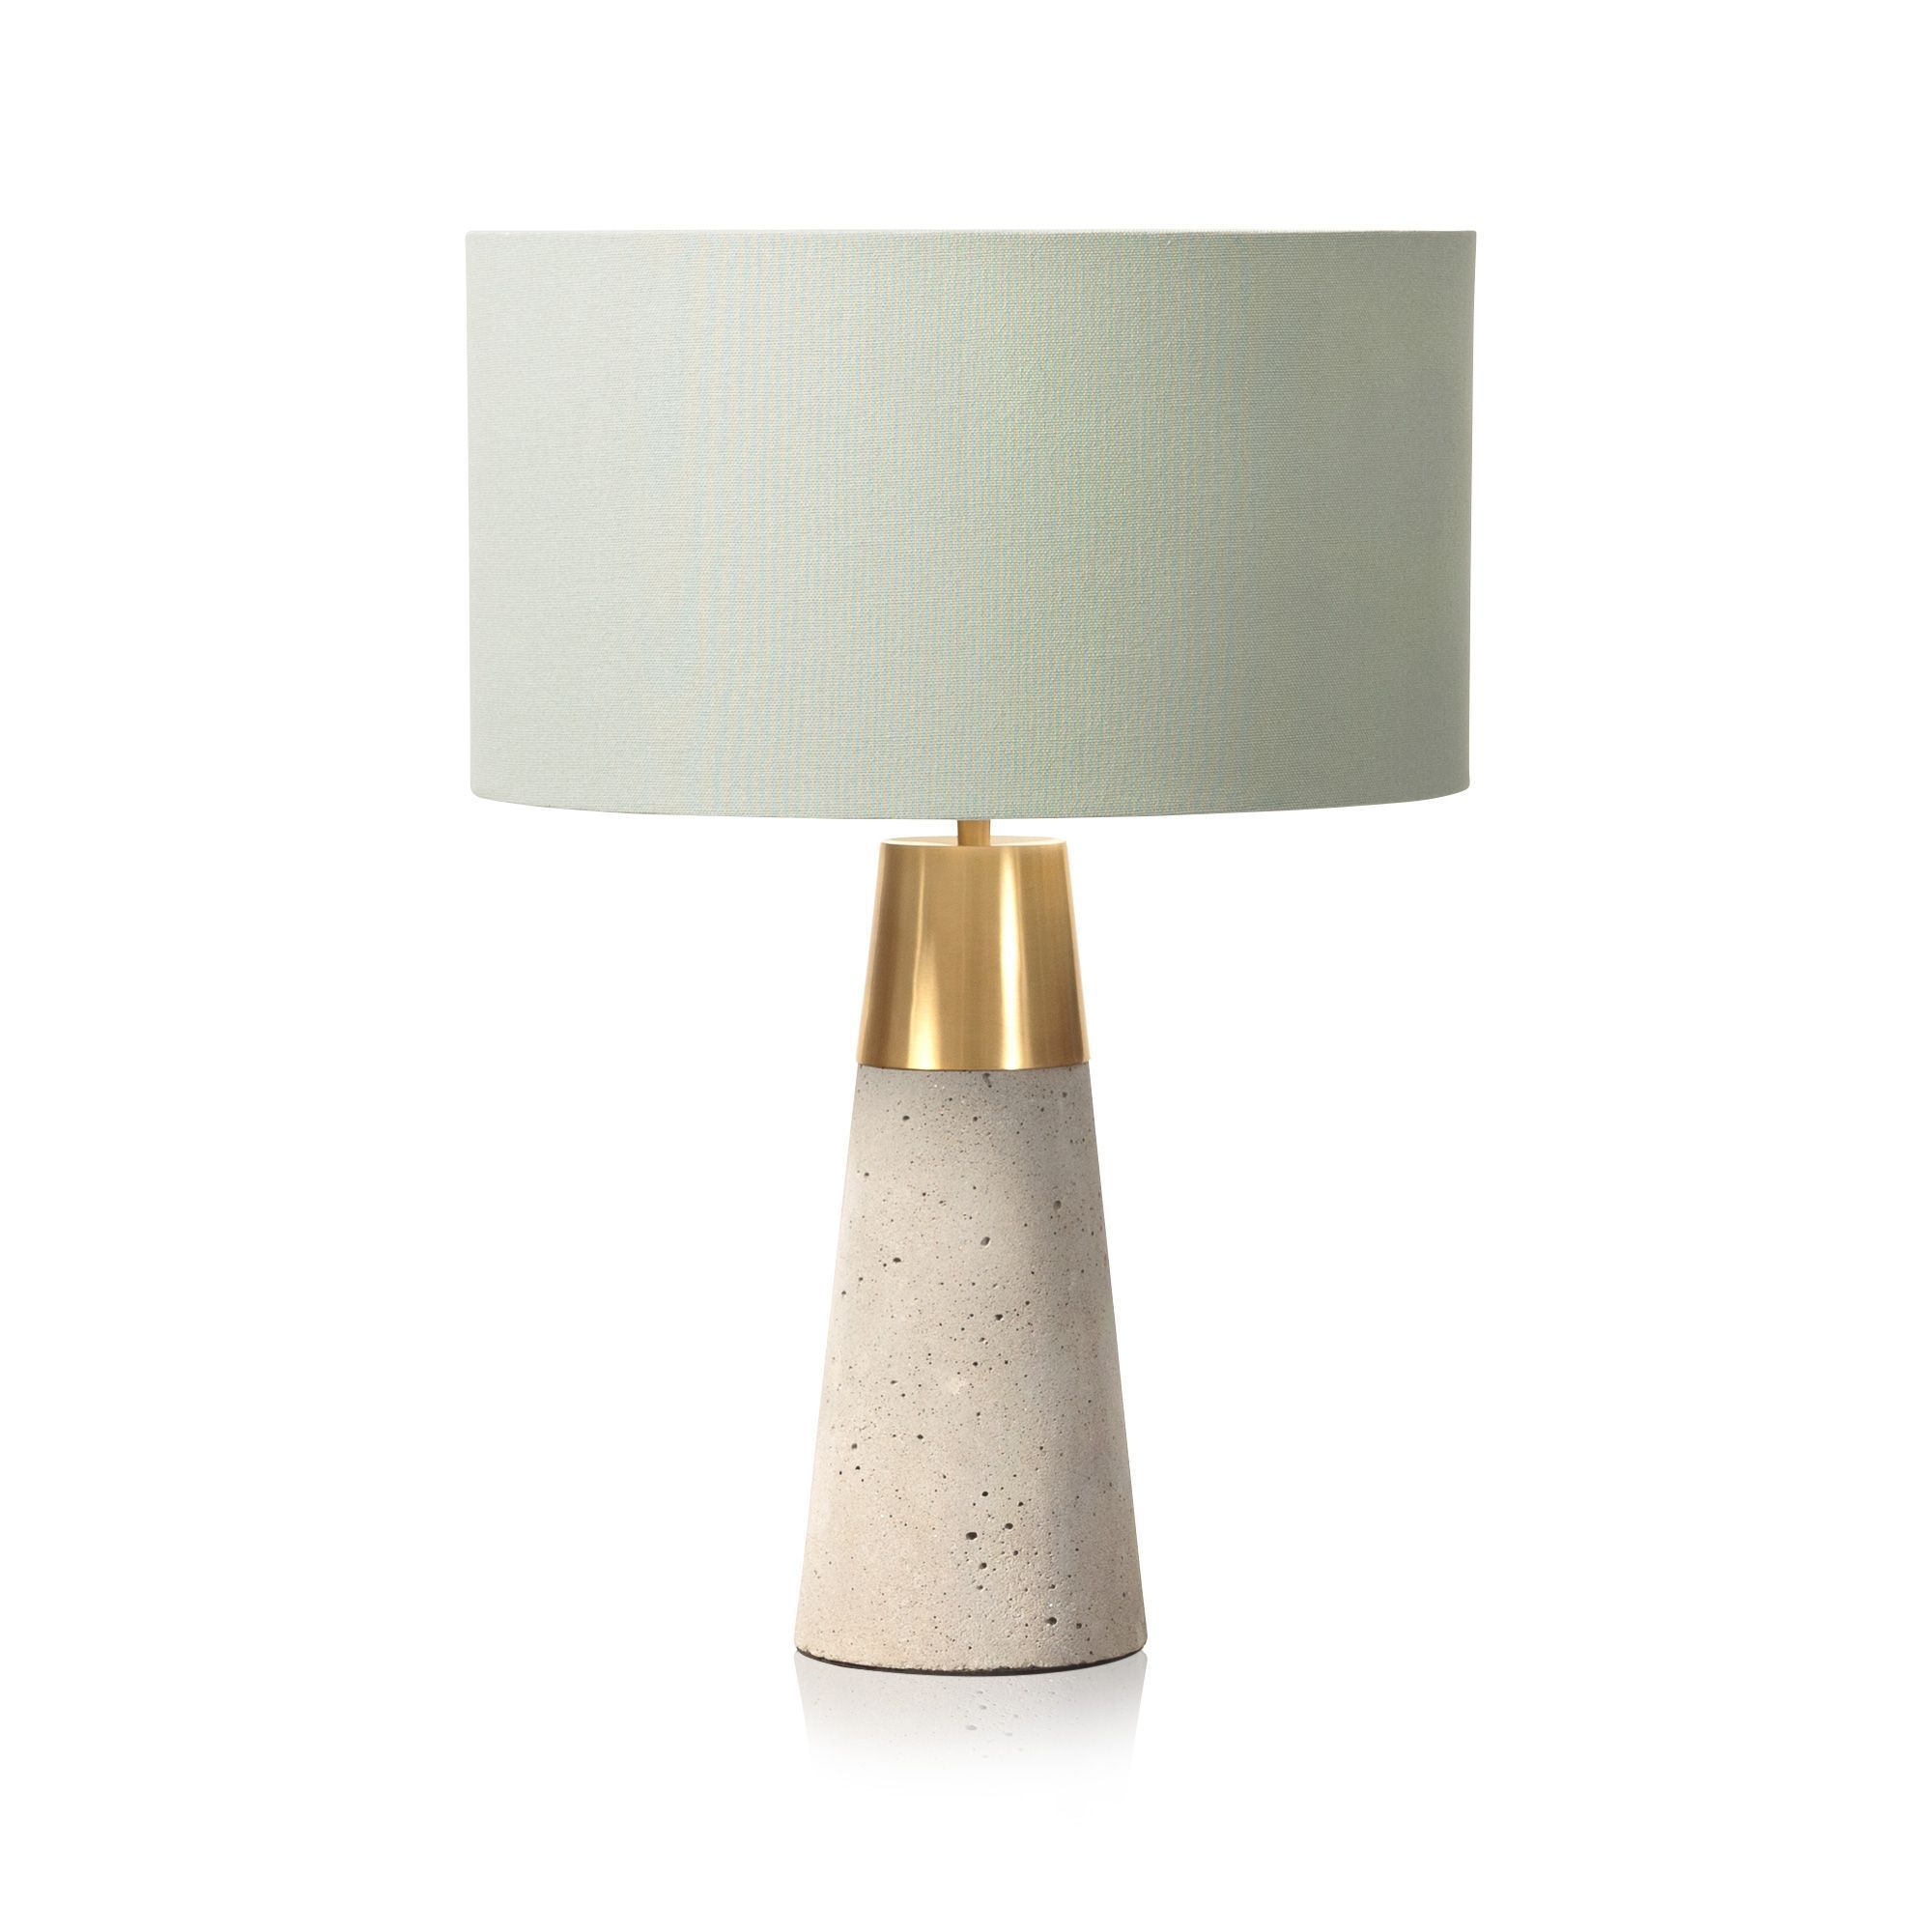 Mid Century Table Lamps Let S Fall In Love With The Most Dazzling Mid Century Lighting Designs Mid Century Table Lamp Table Lamps Living Room Concrete Lamp